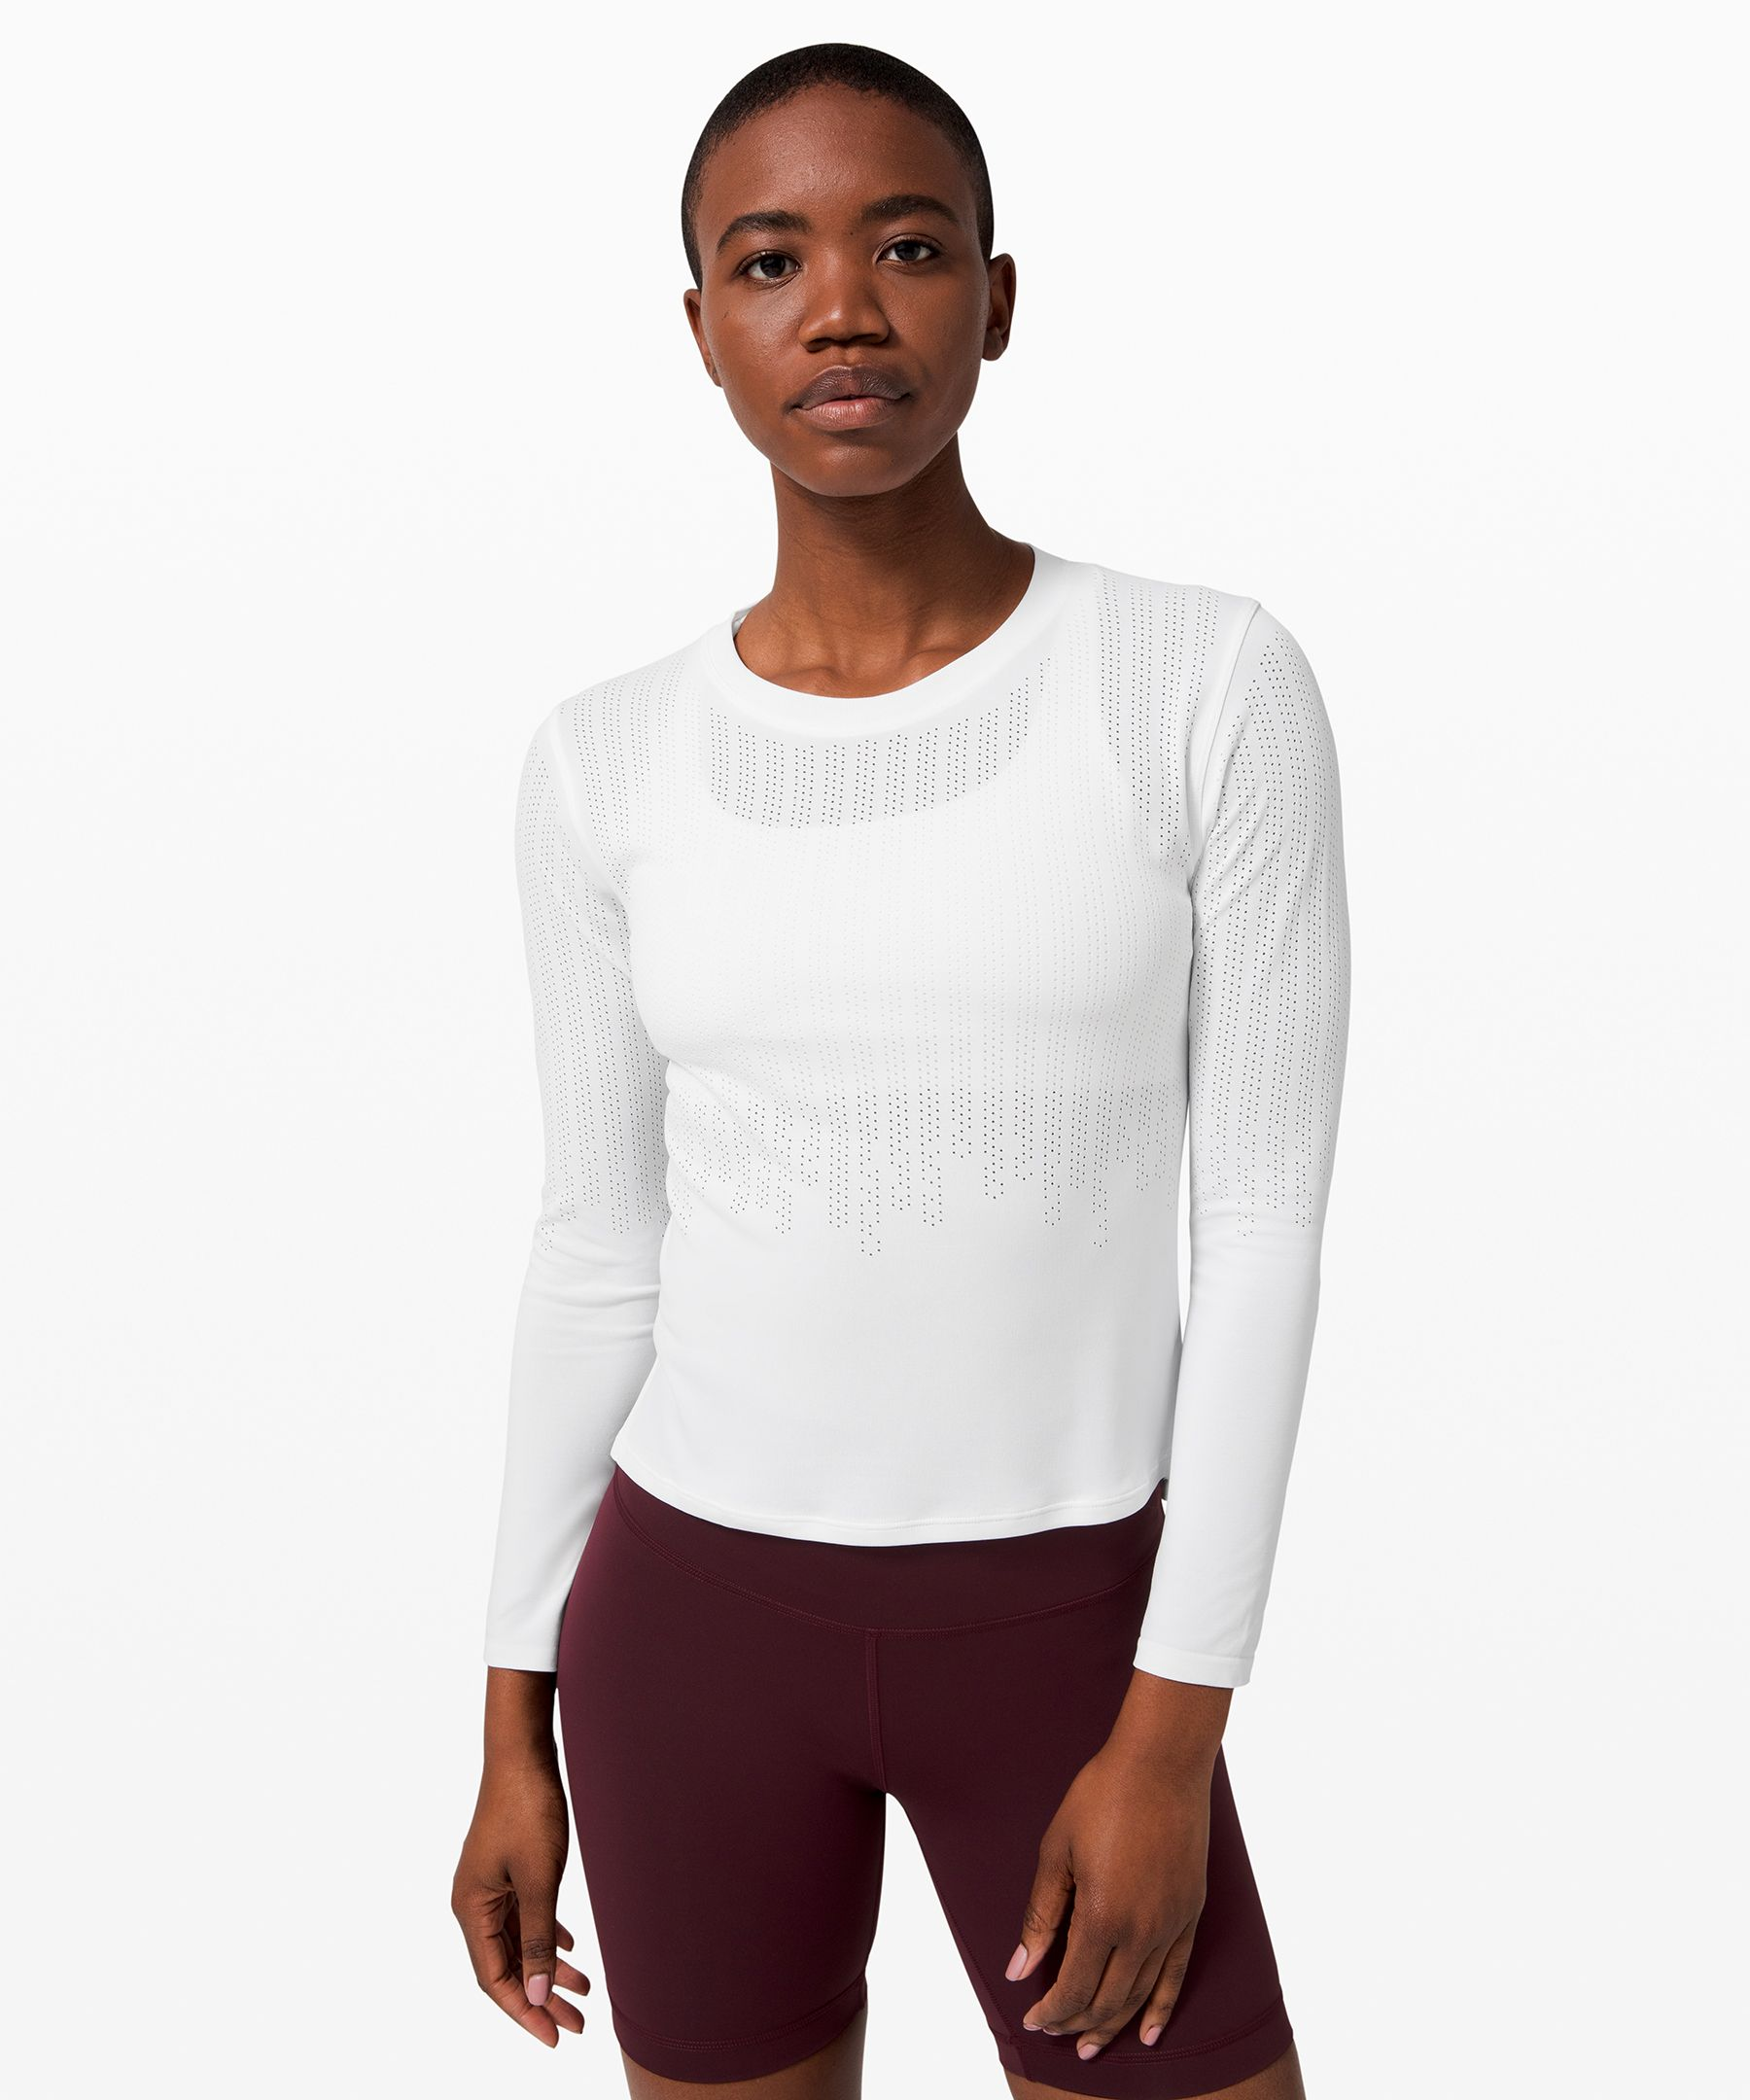 Soft, with a modern  silhouette, this long sleeve  is perfect for restorative  yoga, intense workouts, and  everything in between.